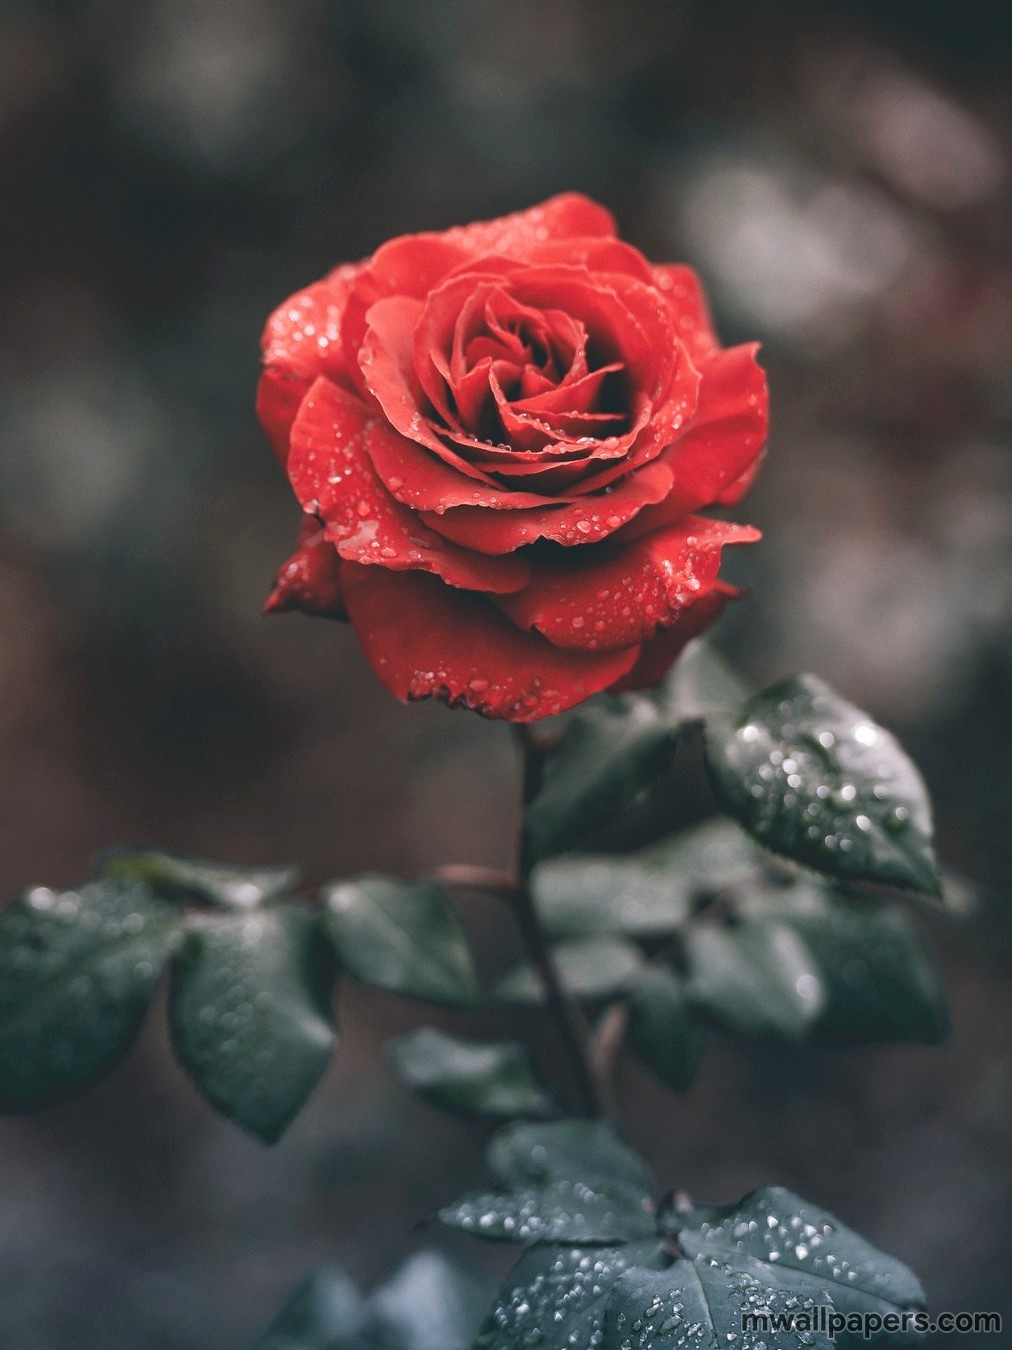 110 flowers 2019 hd photos wallpapers download - Red rose flower hd images ...